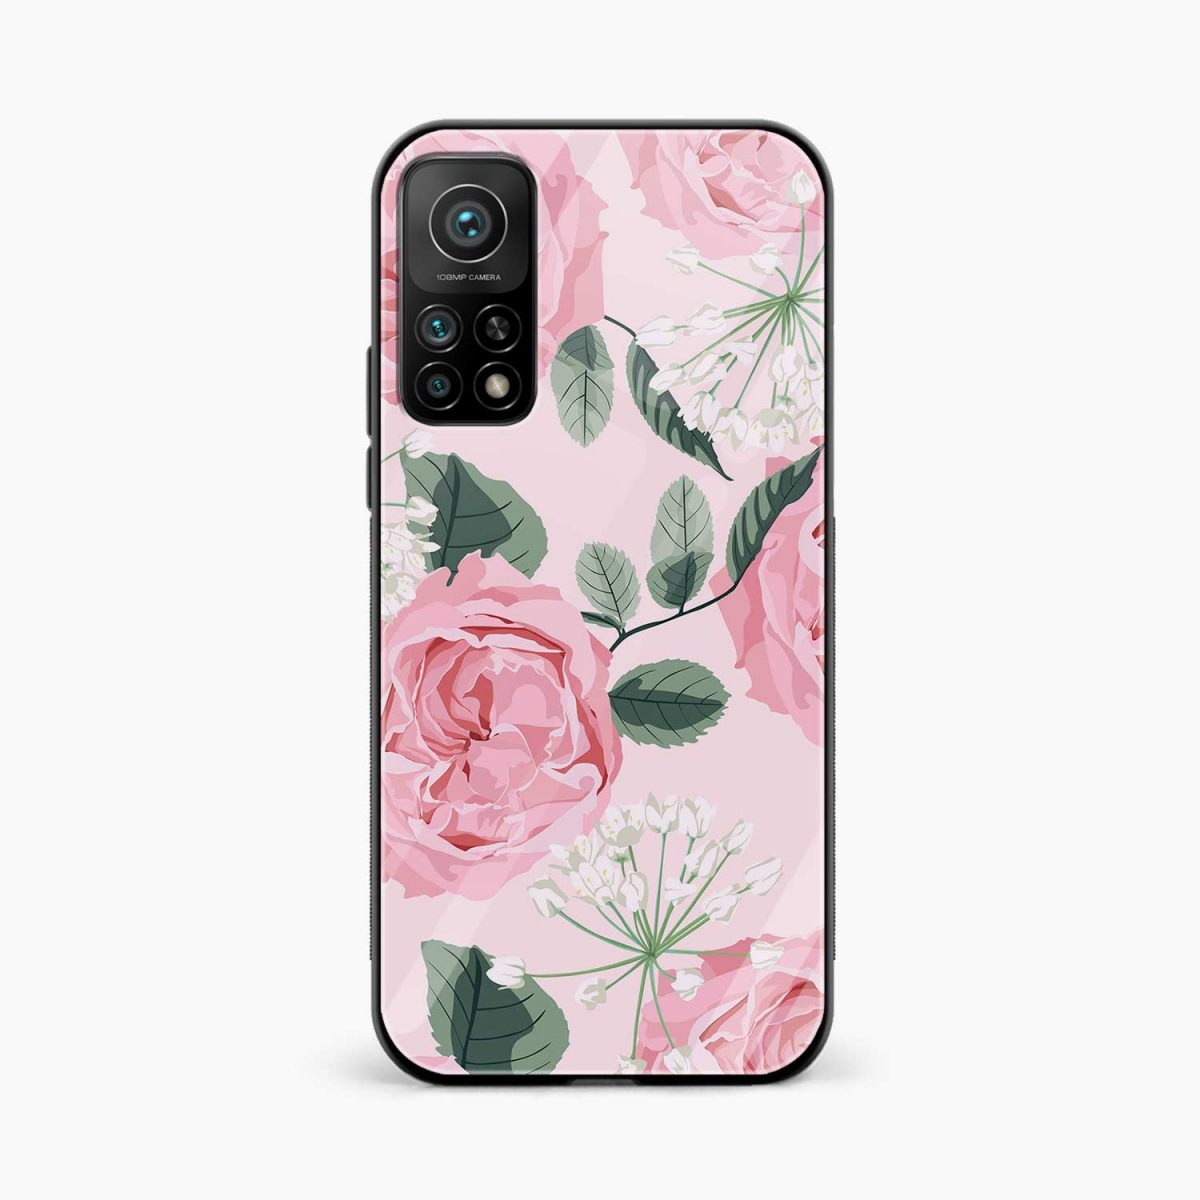 pink floral girlish xiaomi mi 10t pro back cover front view